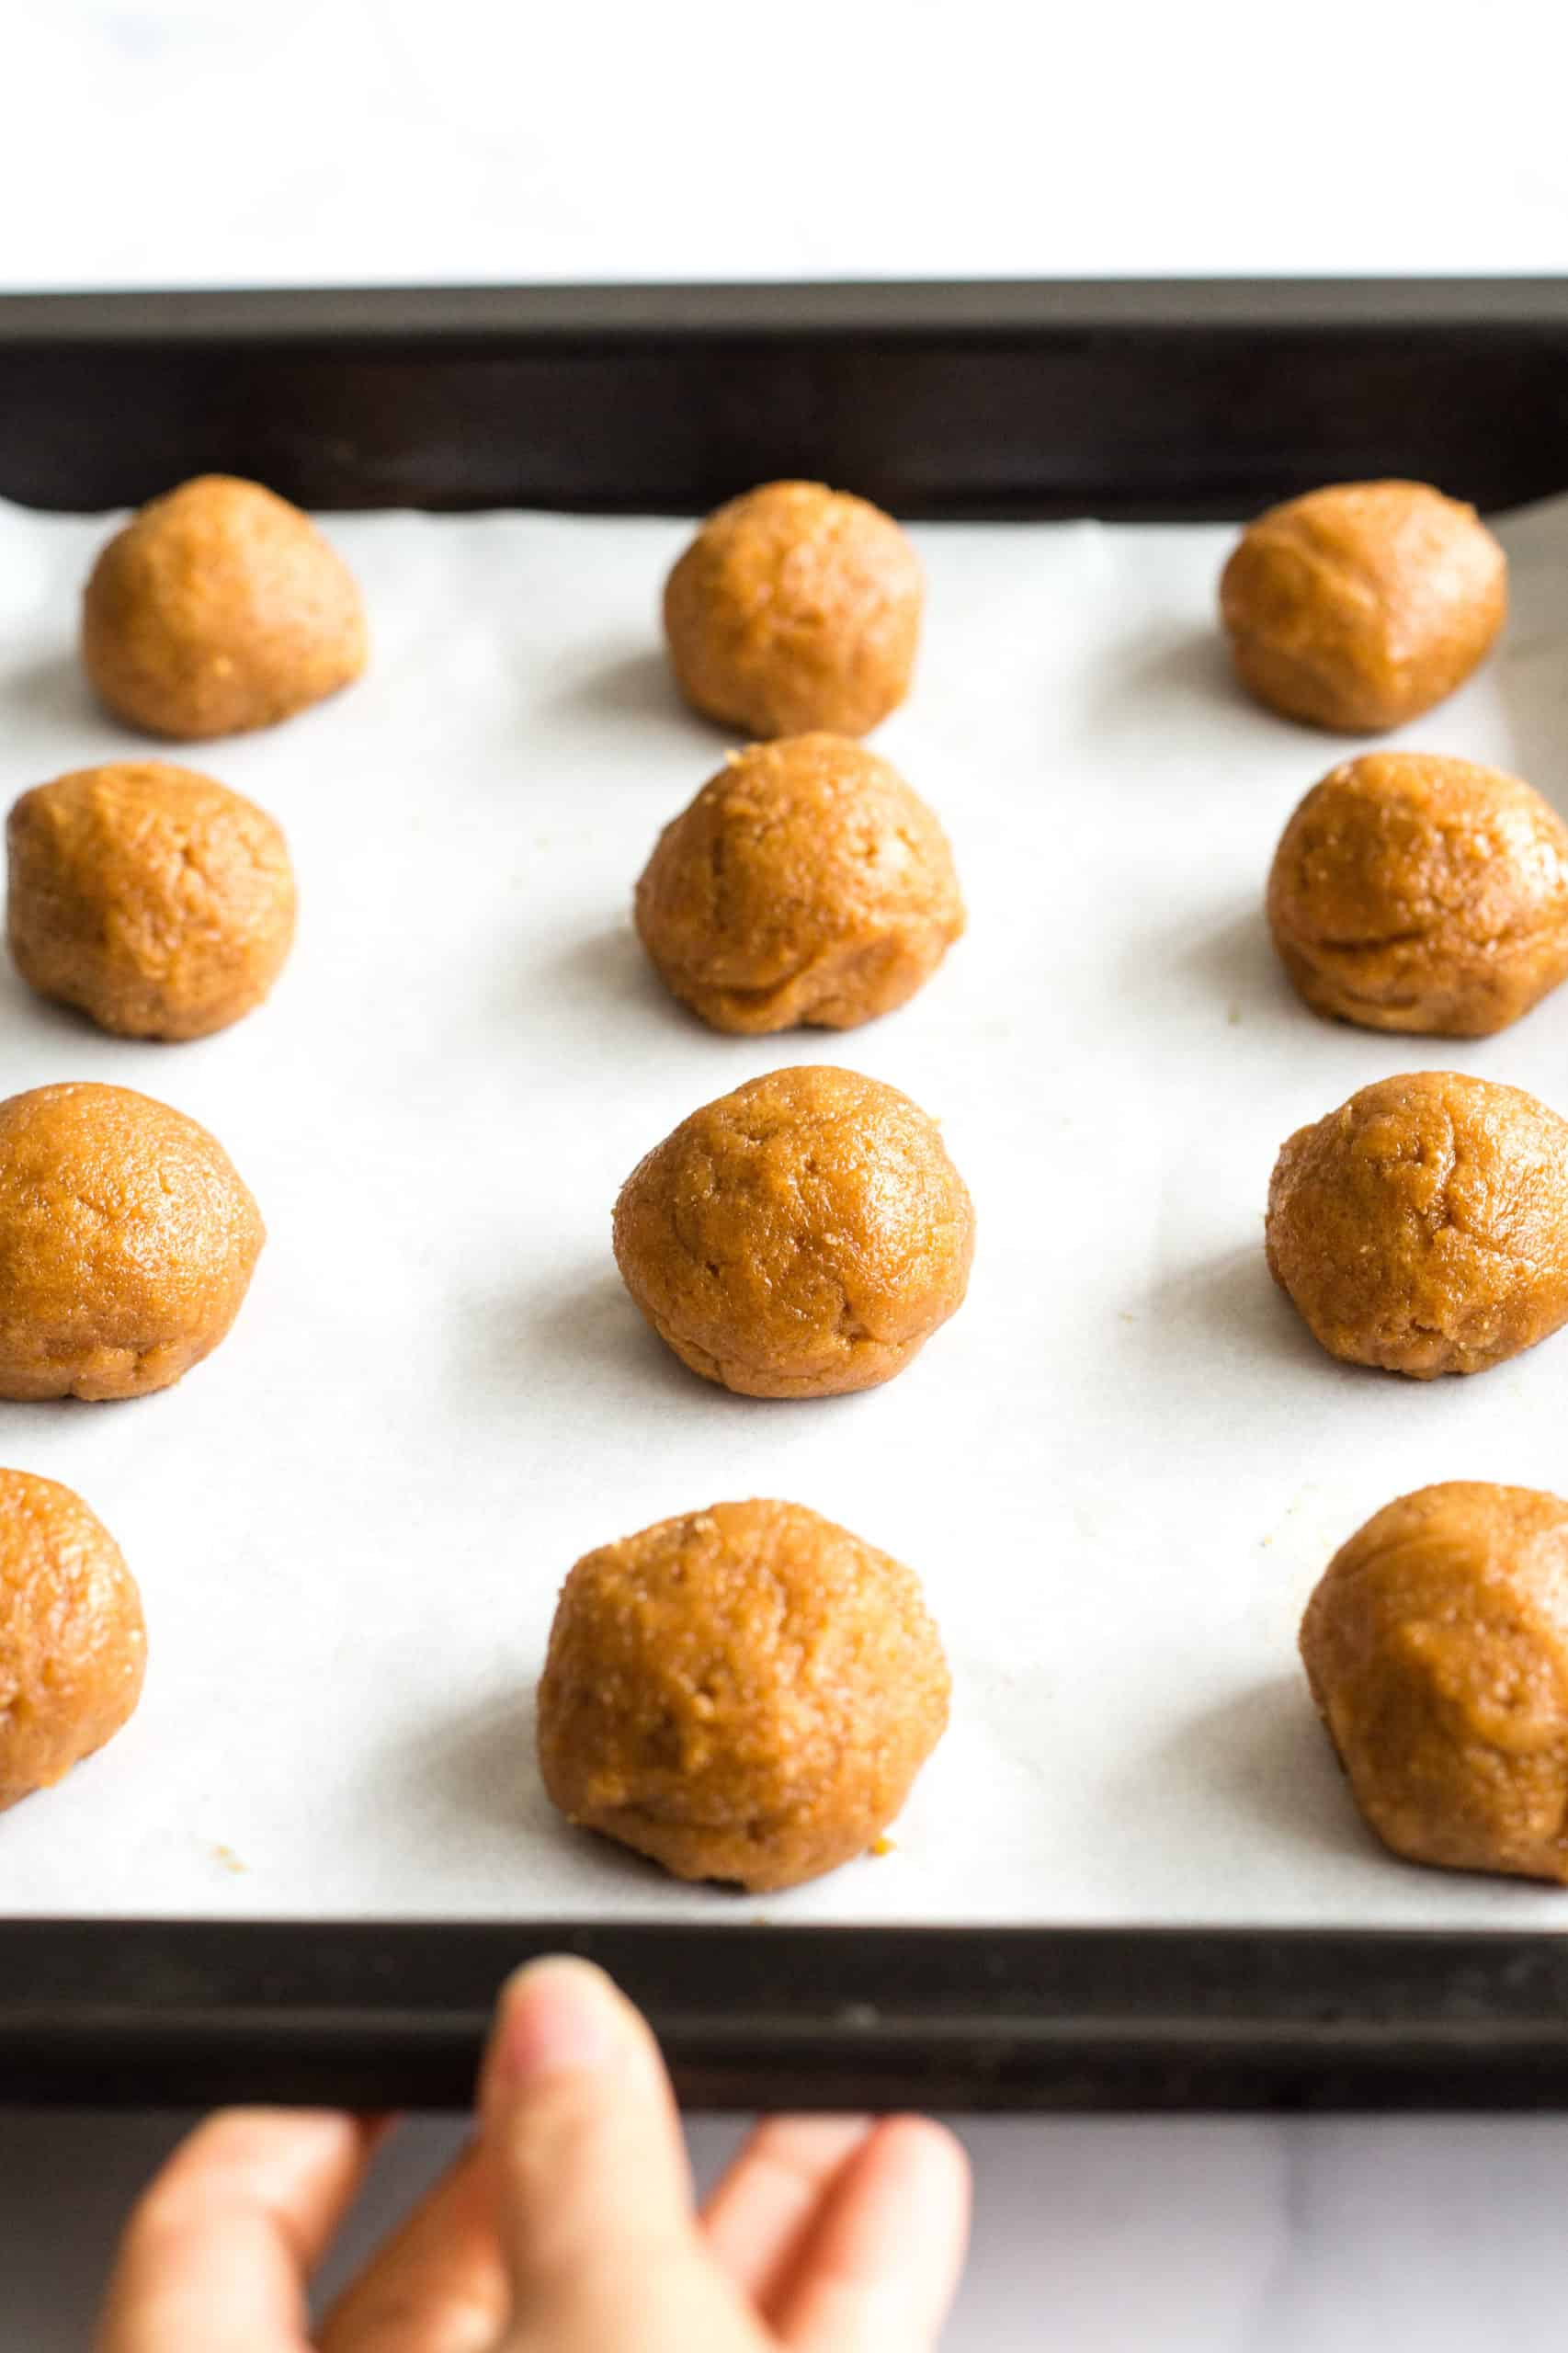 Peanut butter cookie dough balls lined up on a parchment-lined baking sheet.